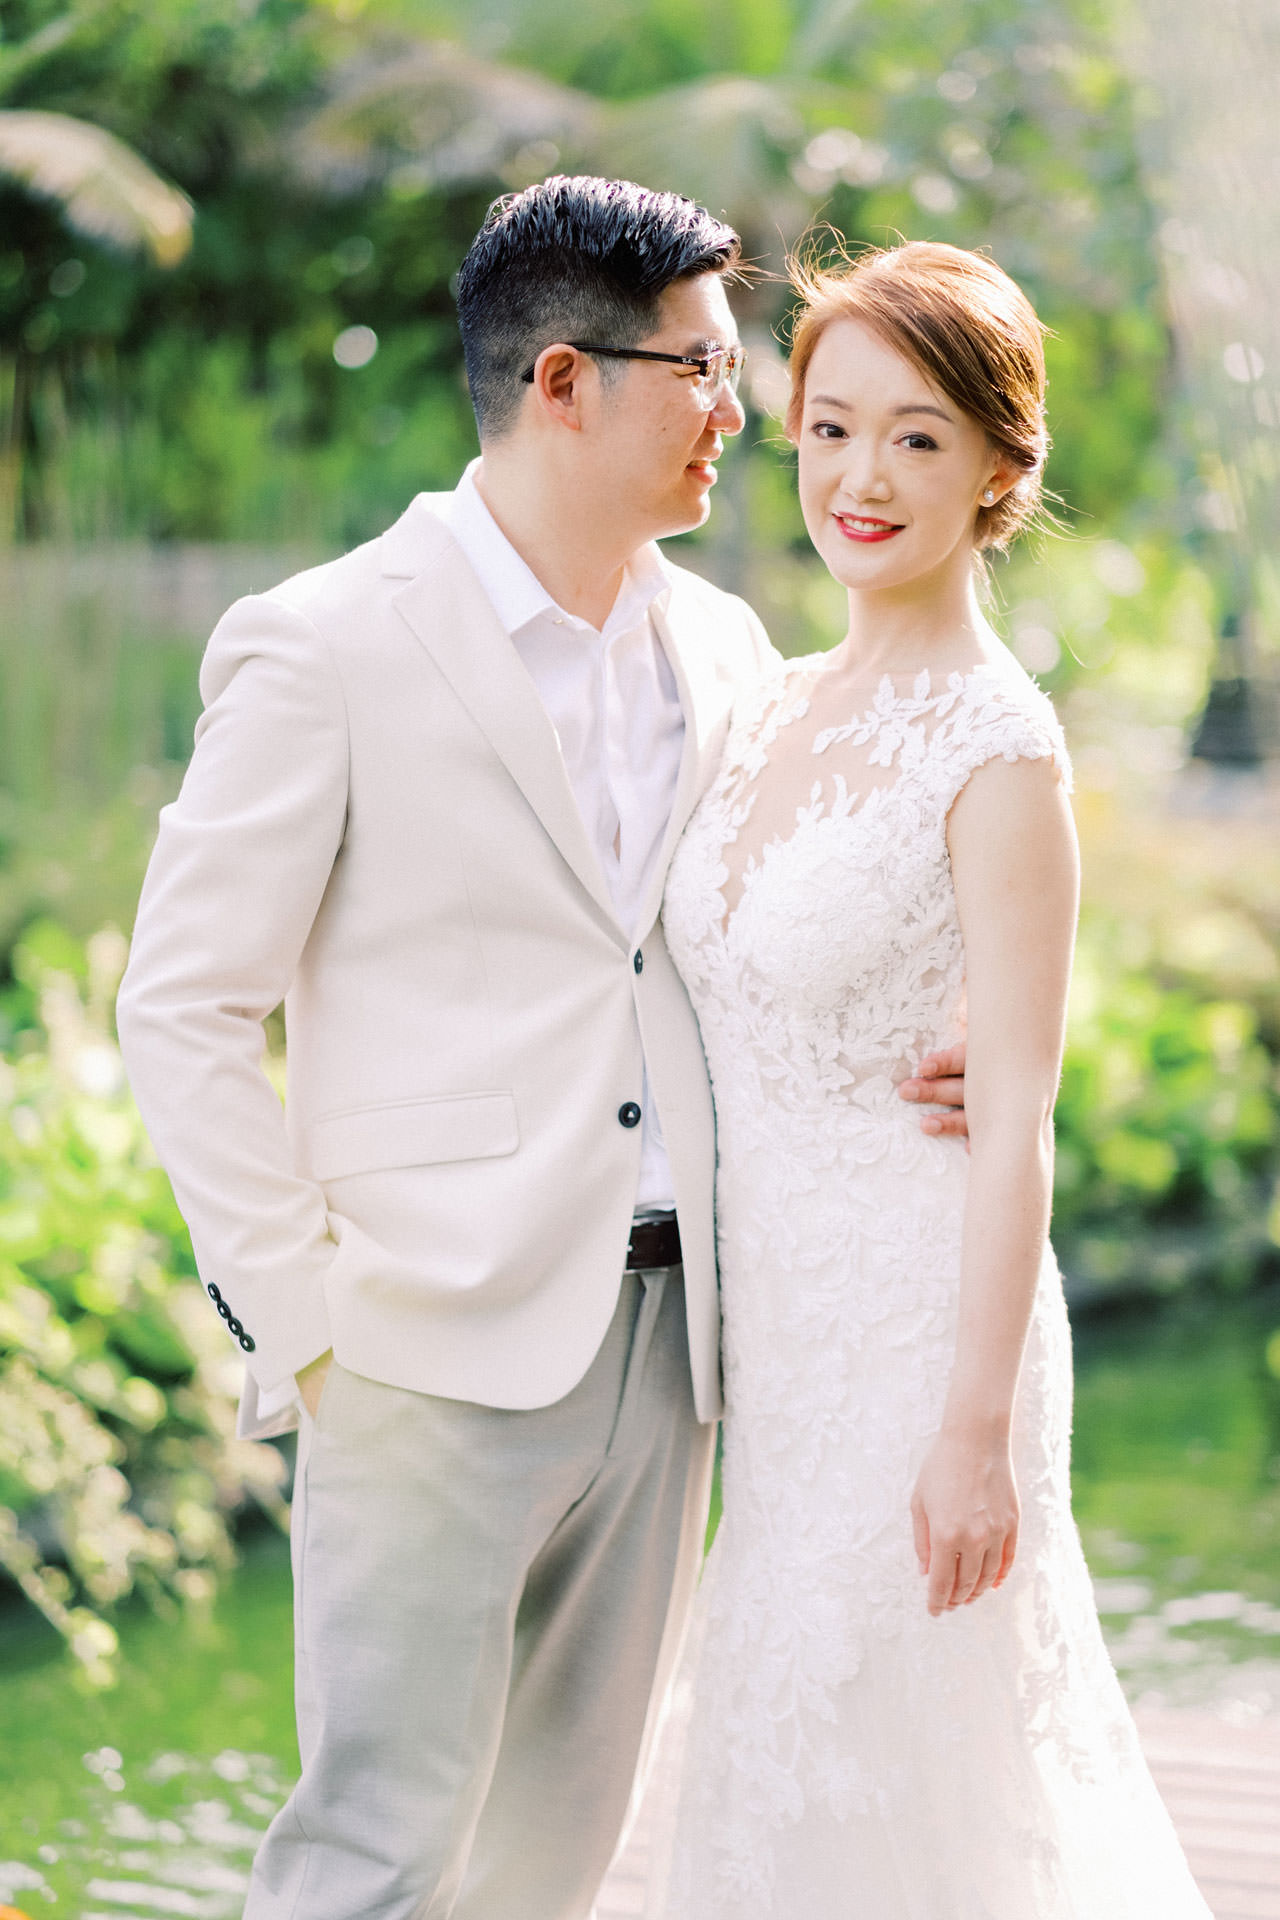 The Ritz Carlton Bali Beach Prewedding 1